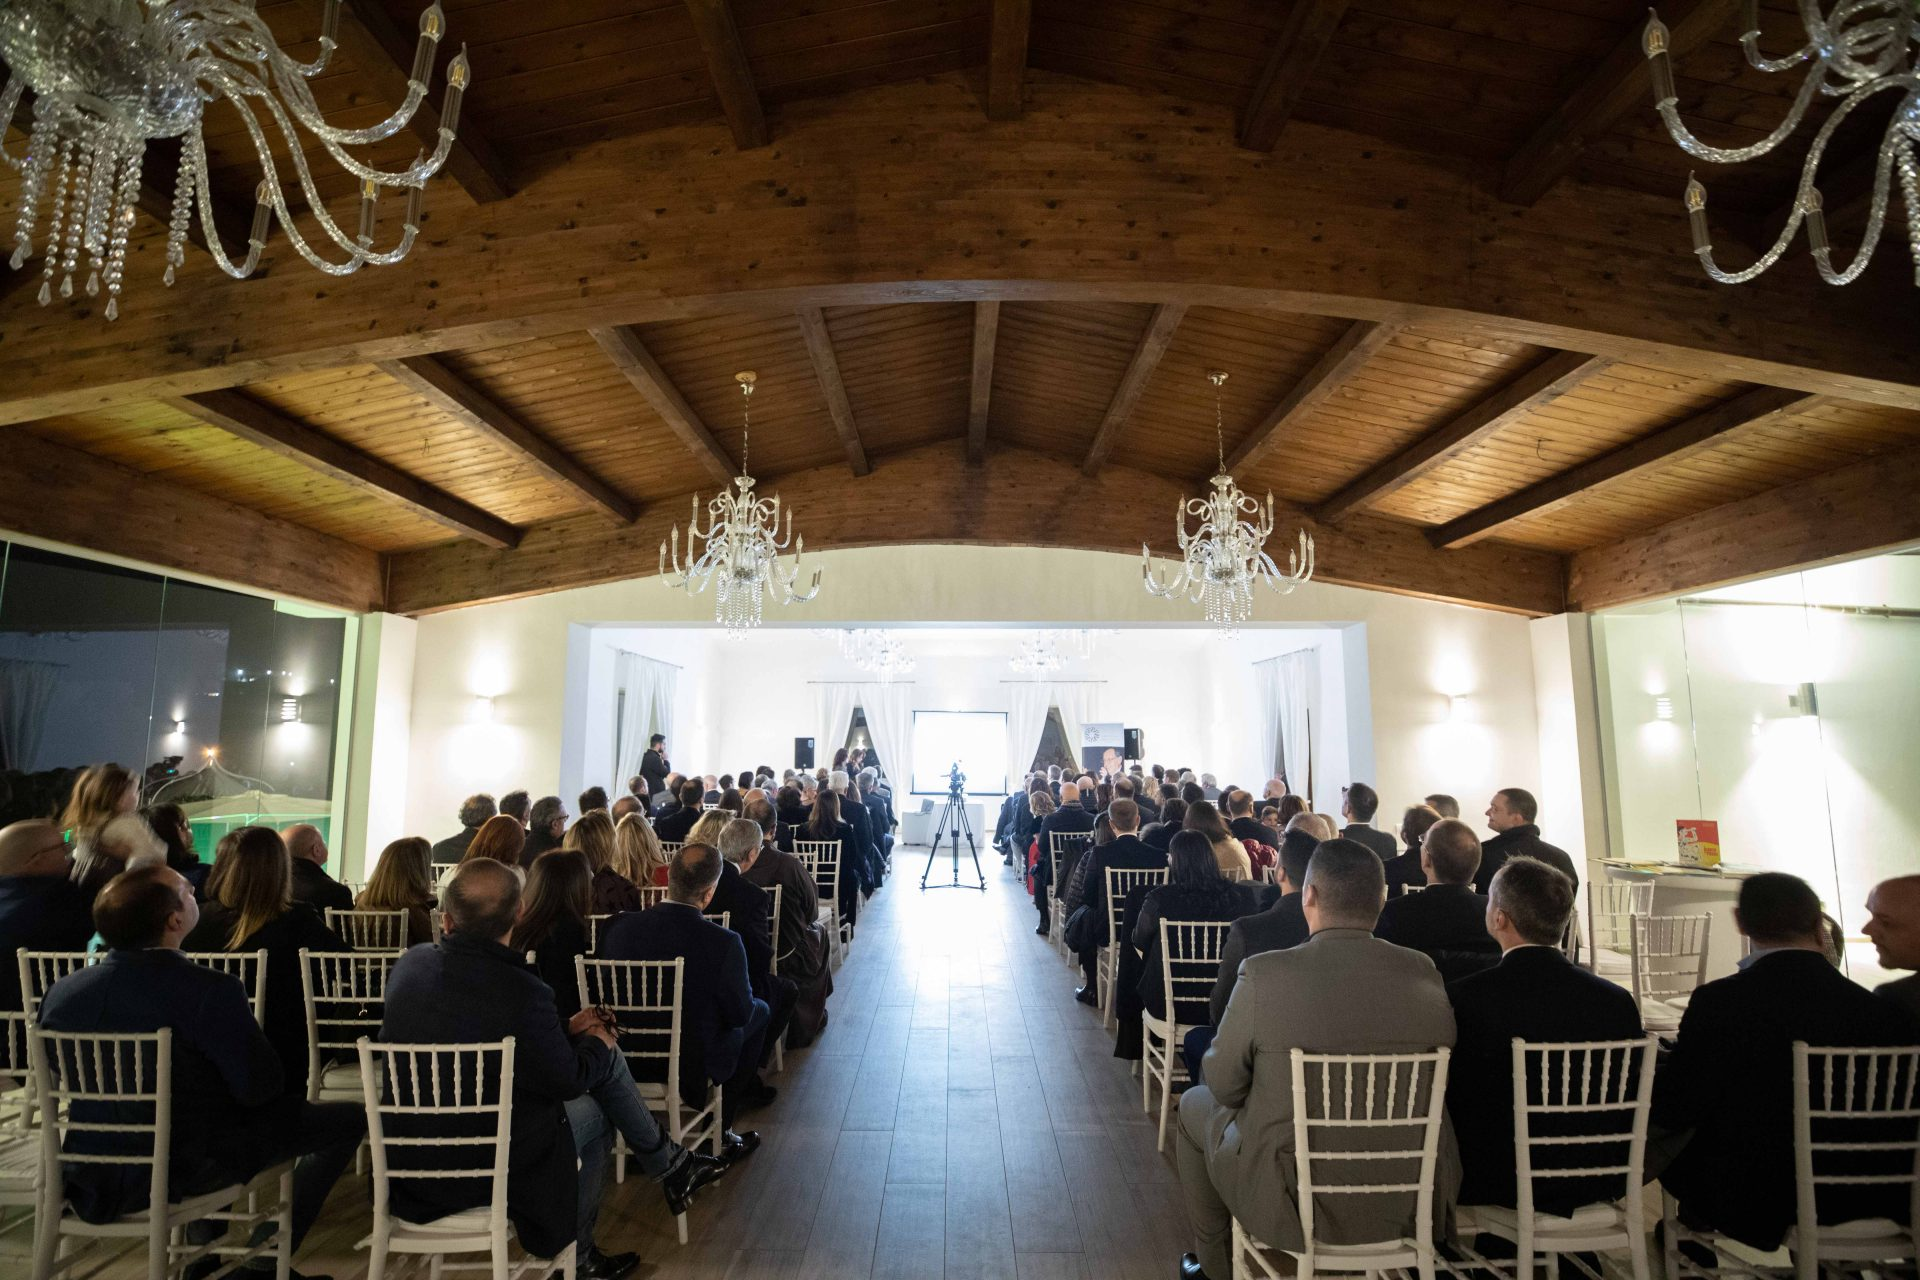 [VIDEO] XIX Charity Gala Fondazione Angelo Affinita